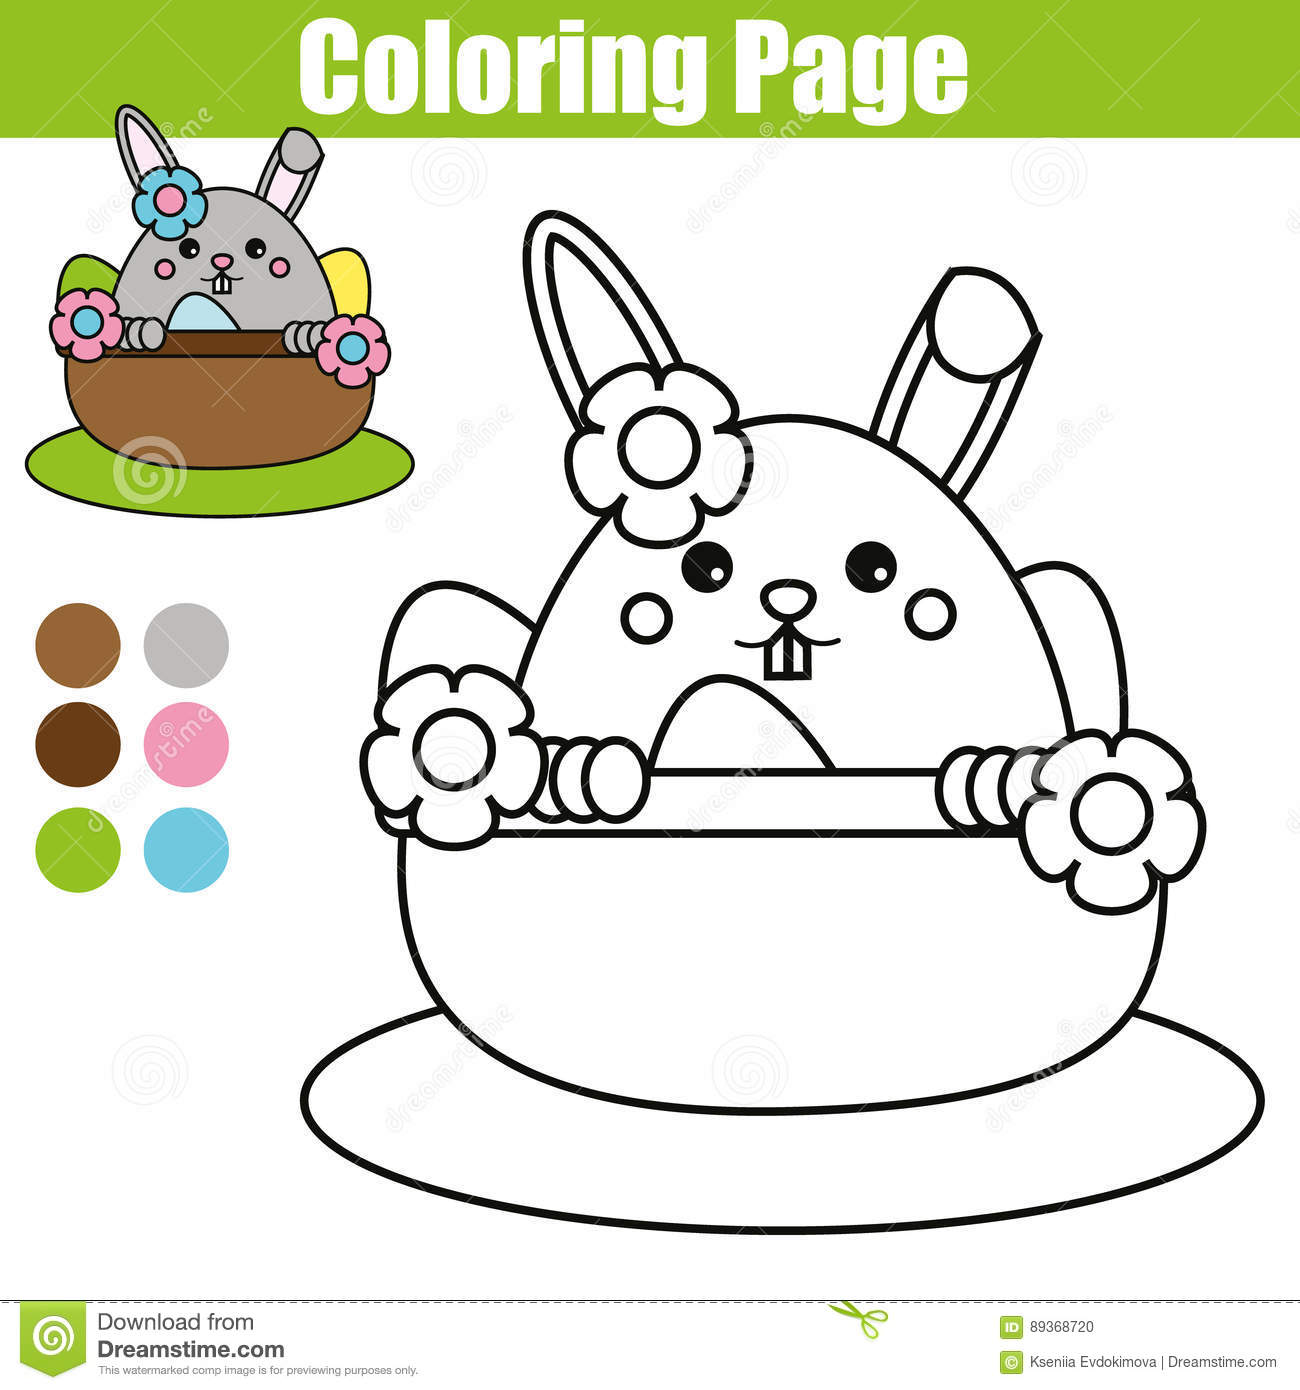 photograph regarding Bunny Printable named Coloring Website page With Easter Bunny Persona. Printable